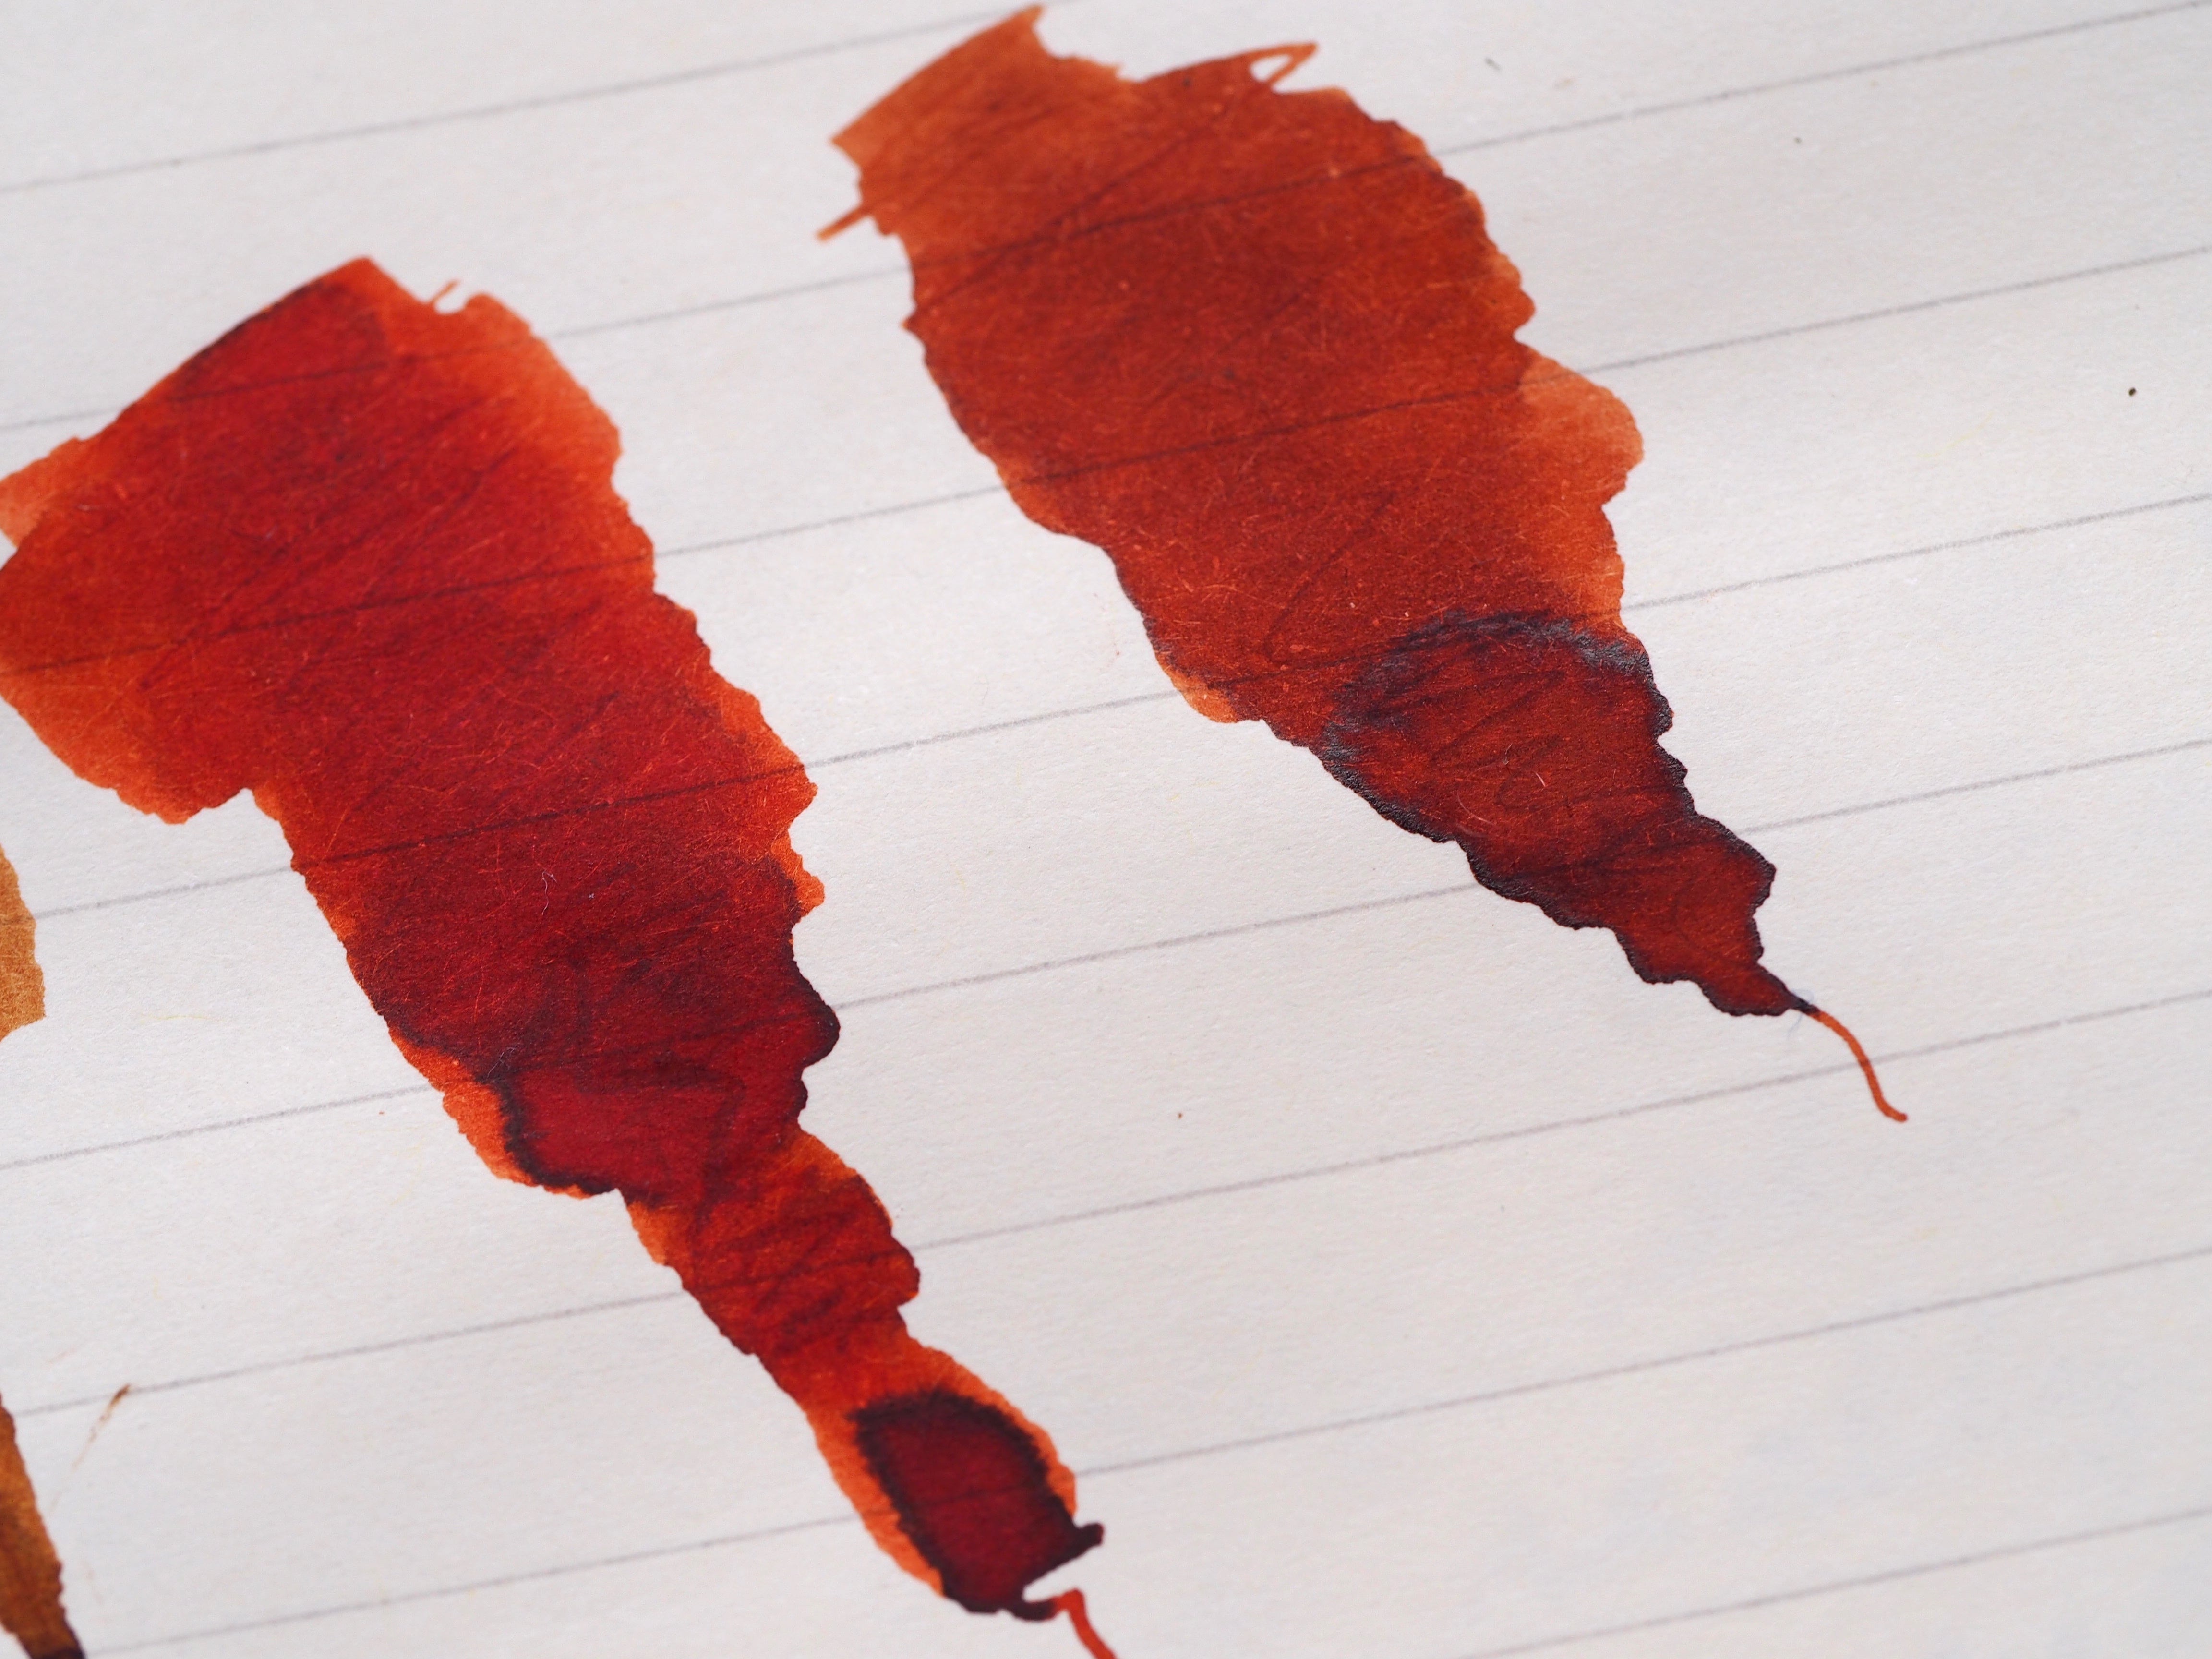 Diamine Ancient Copper on the left, with a bit more red to it, and Diamine 150th Anniversary Terracotta on the right, a bit more brown.